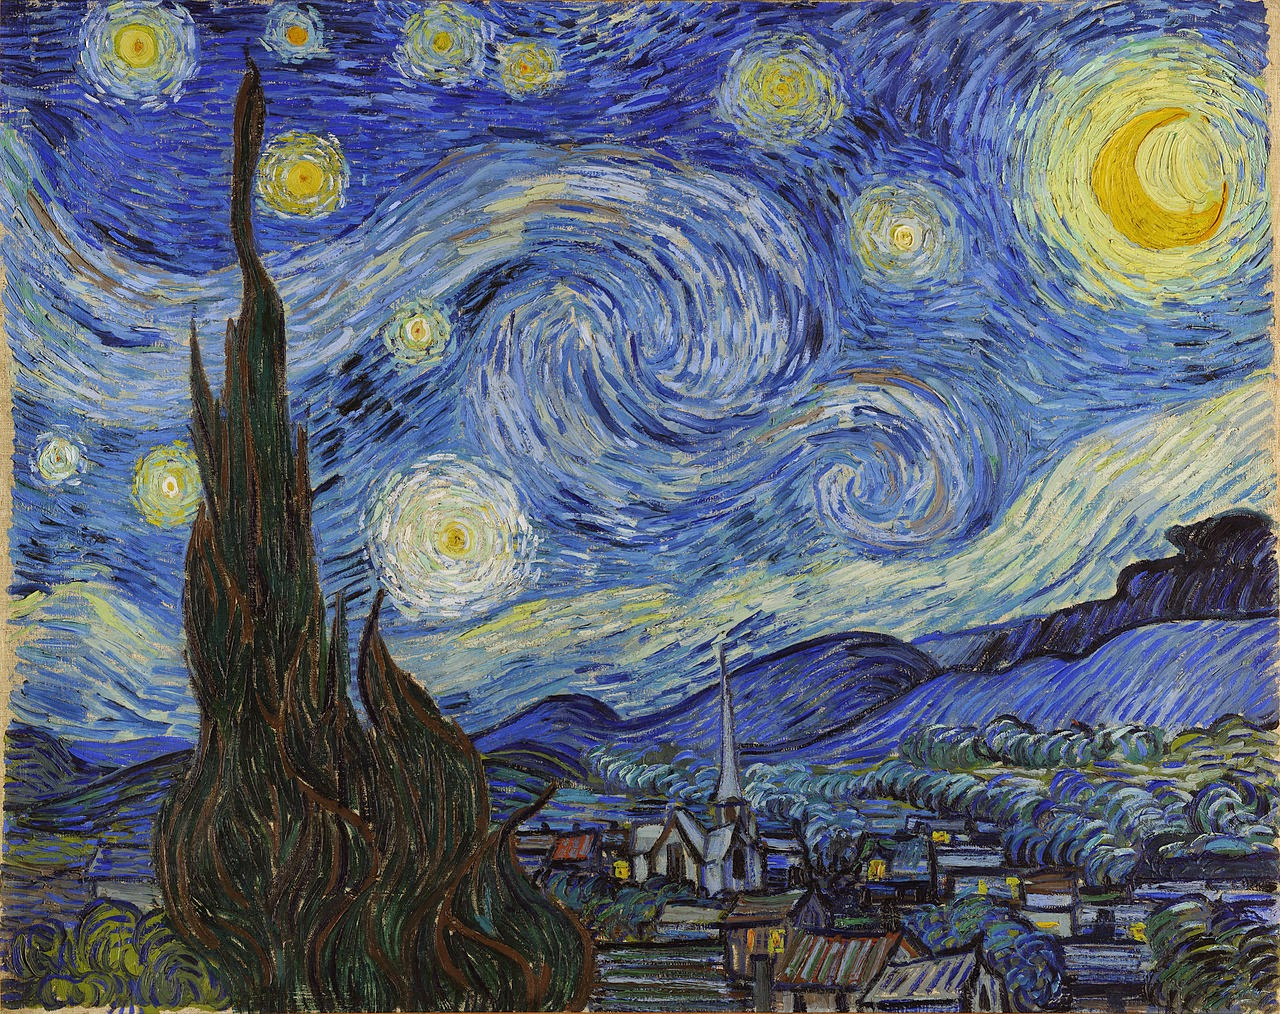 Vincent van Gogh, The Starry Night blue swirls sweeping expressive nature